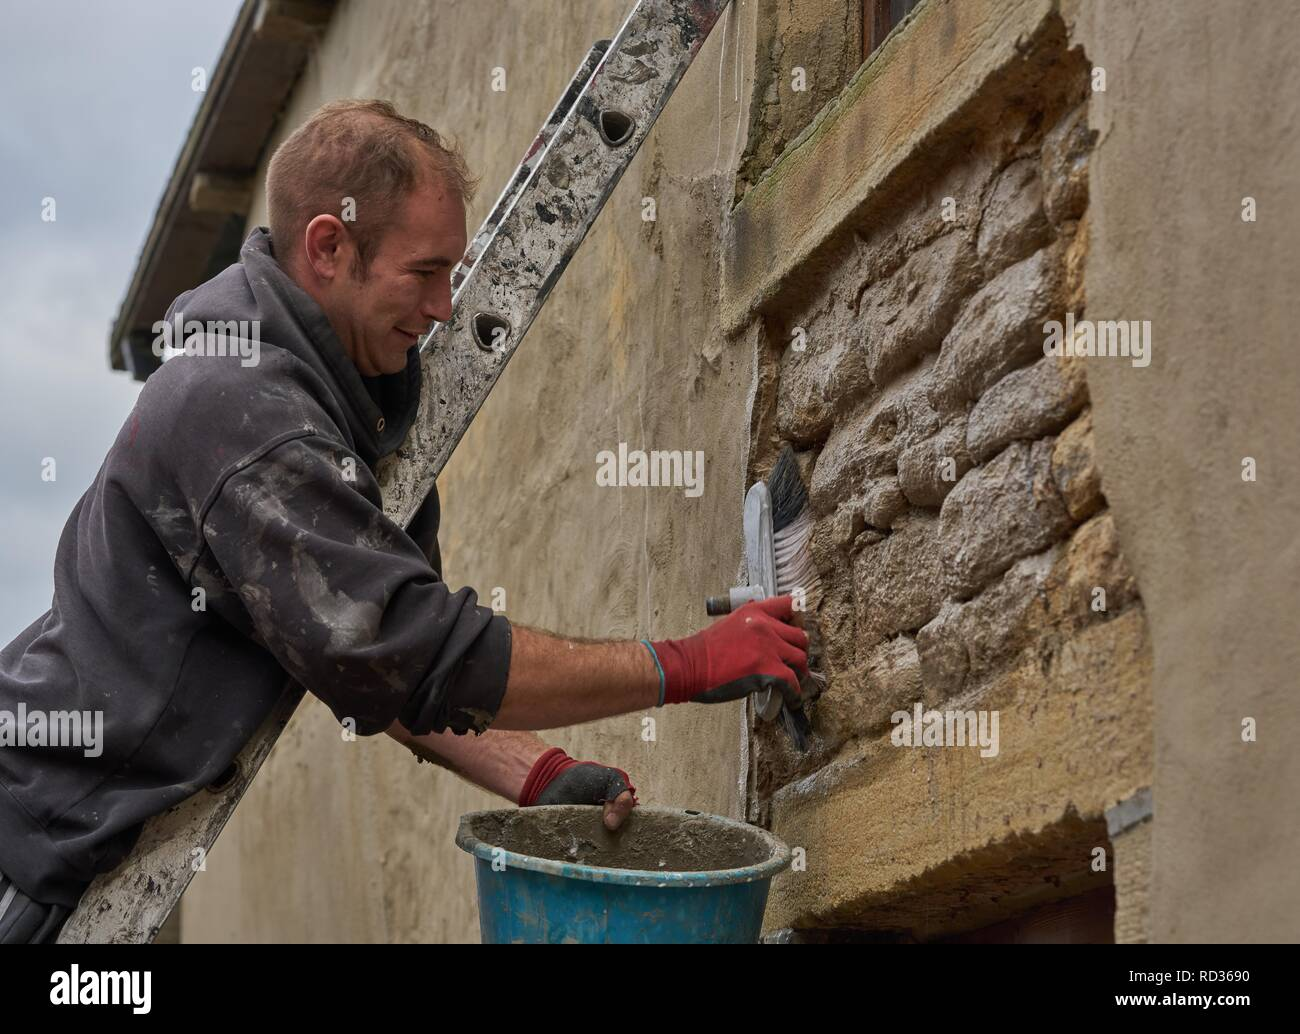 Man on ladder working, carrying out building repair and property restoration work on structural wall - Stock Image